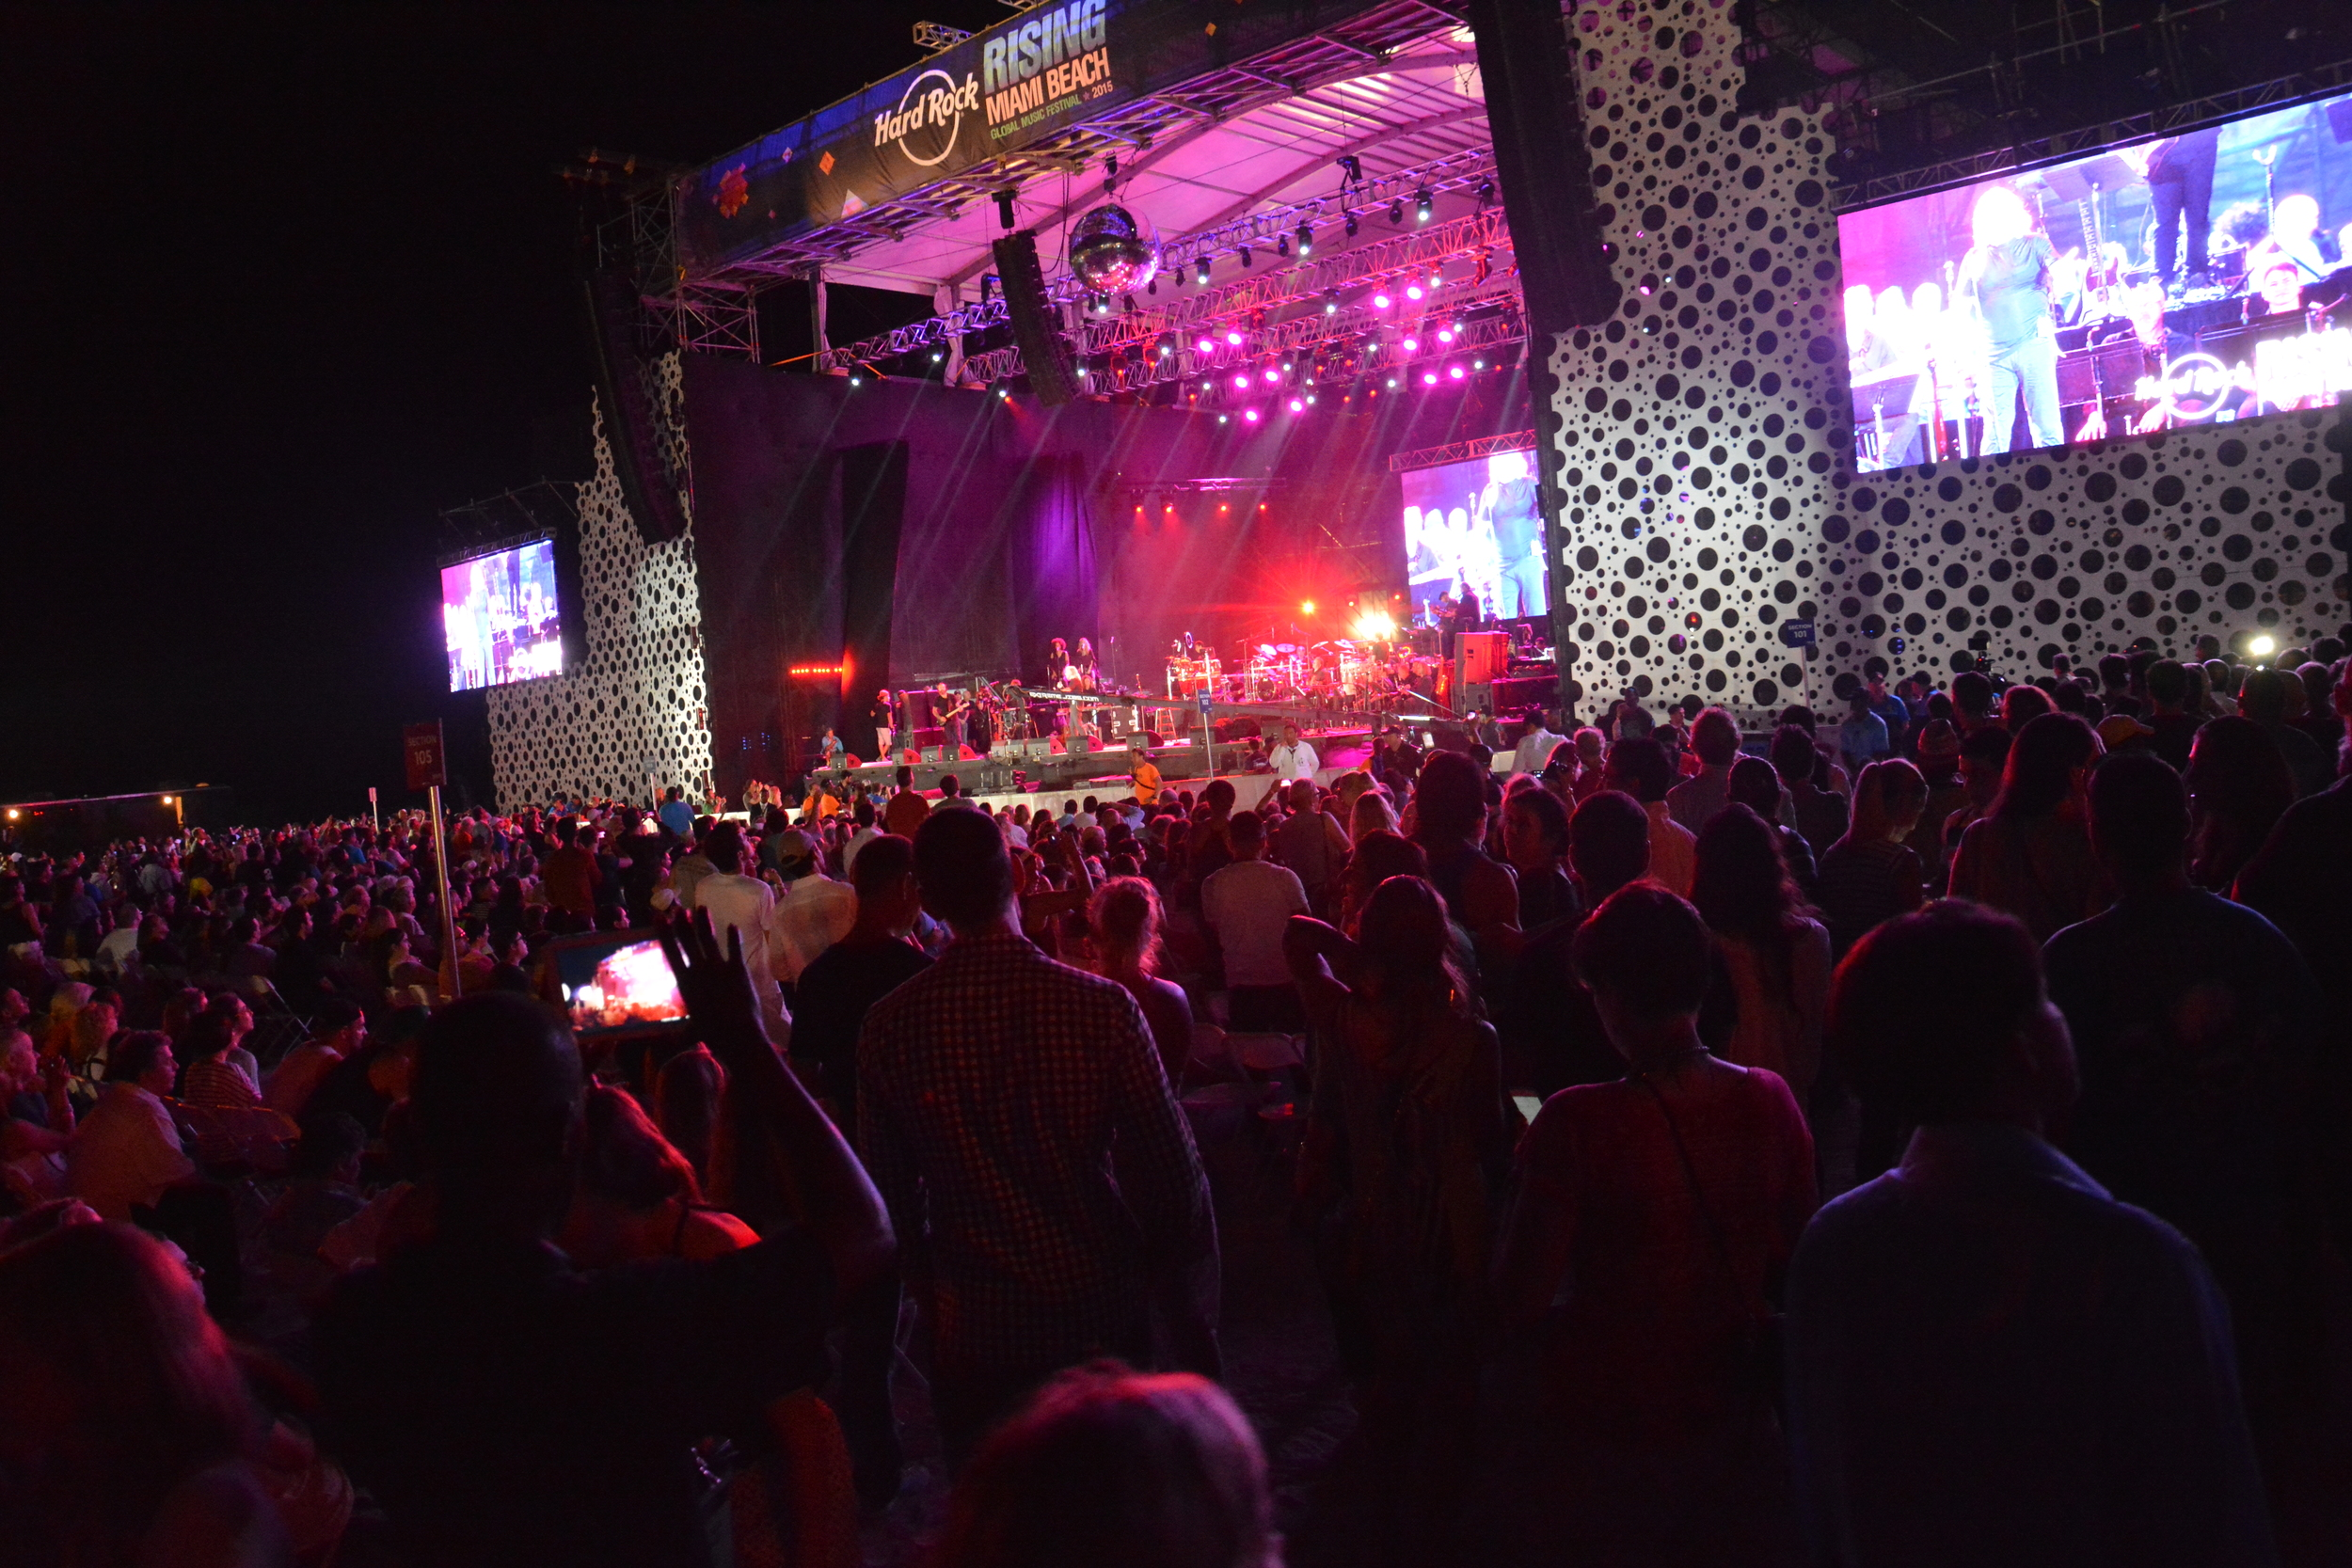 Thousands of locals and tourists gathered to share in the sights and sounds of Miami Beach 100 Centennial Celebration on the beach at 8th Street and Ocean Drive